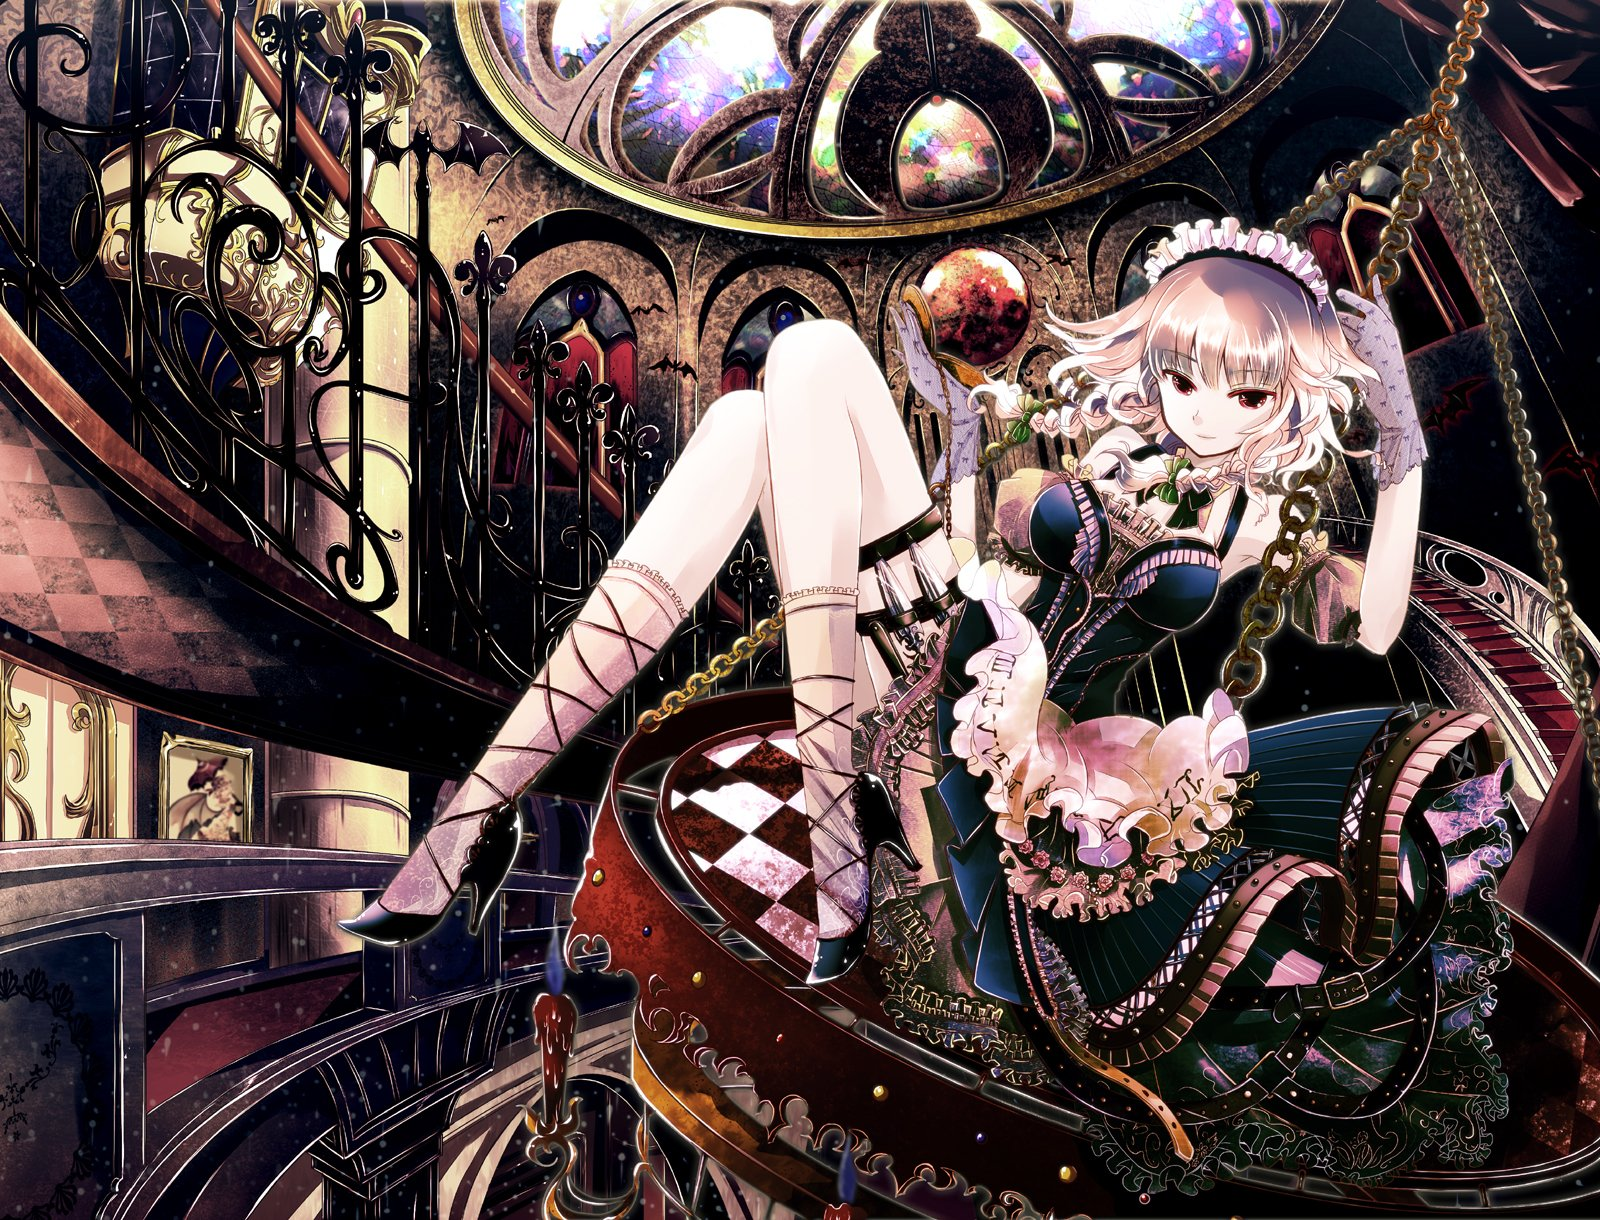 Anime - Touhou  Shrine Maiden Sakuya Izayoi Maid Wallpaper